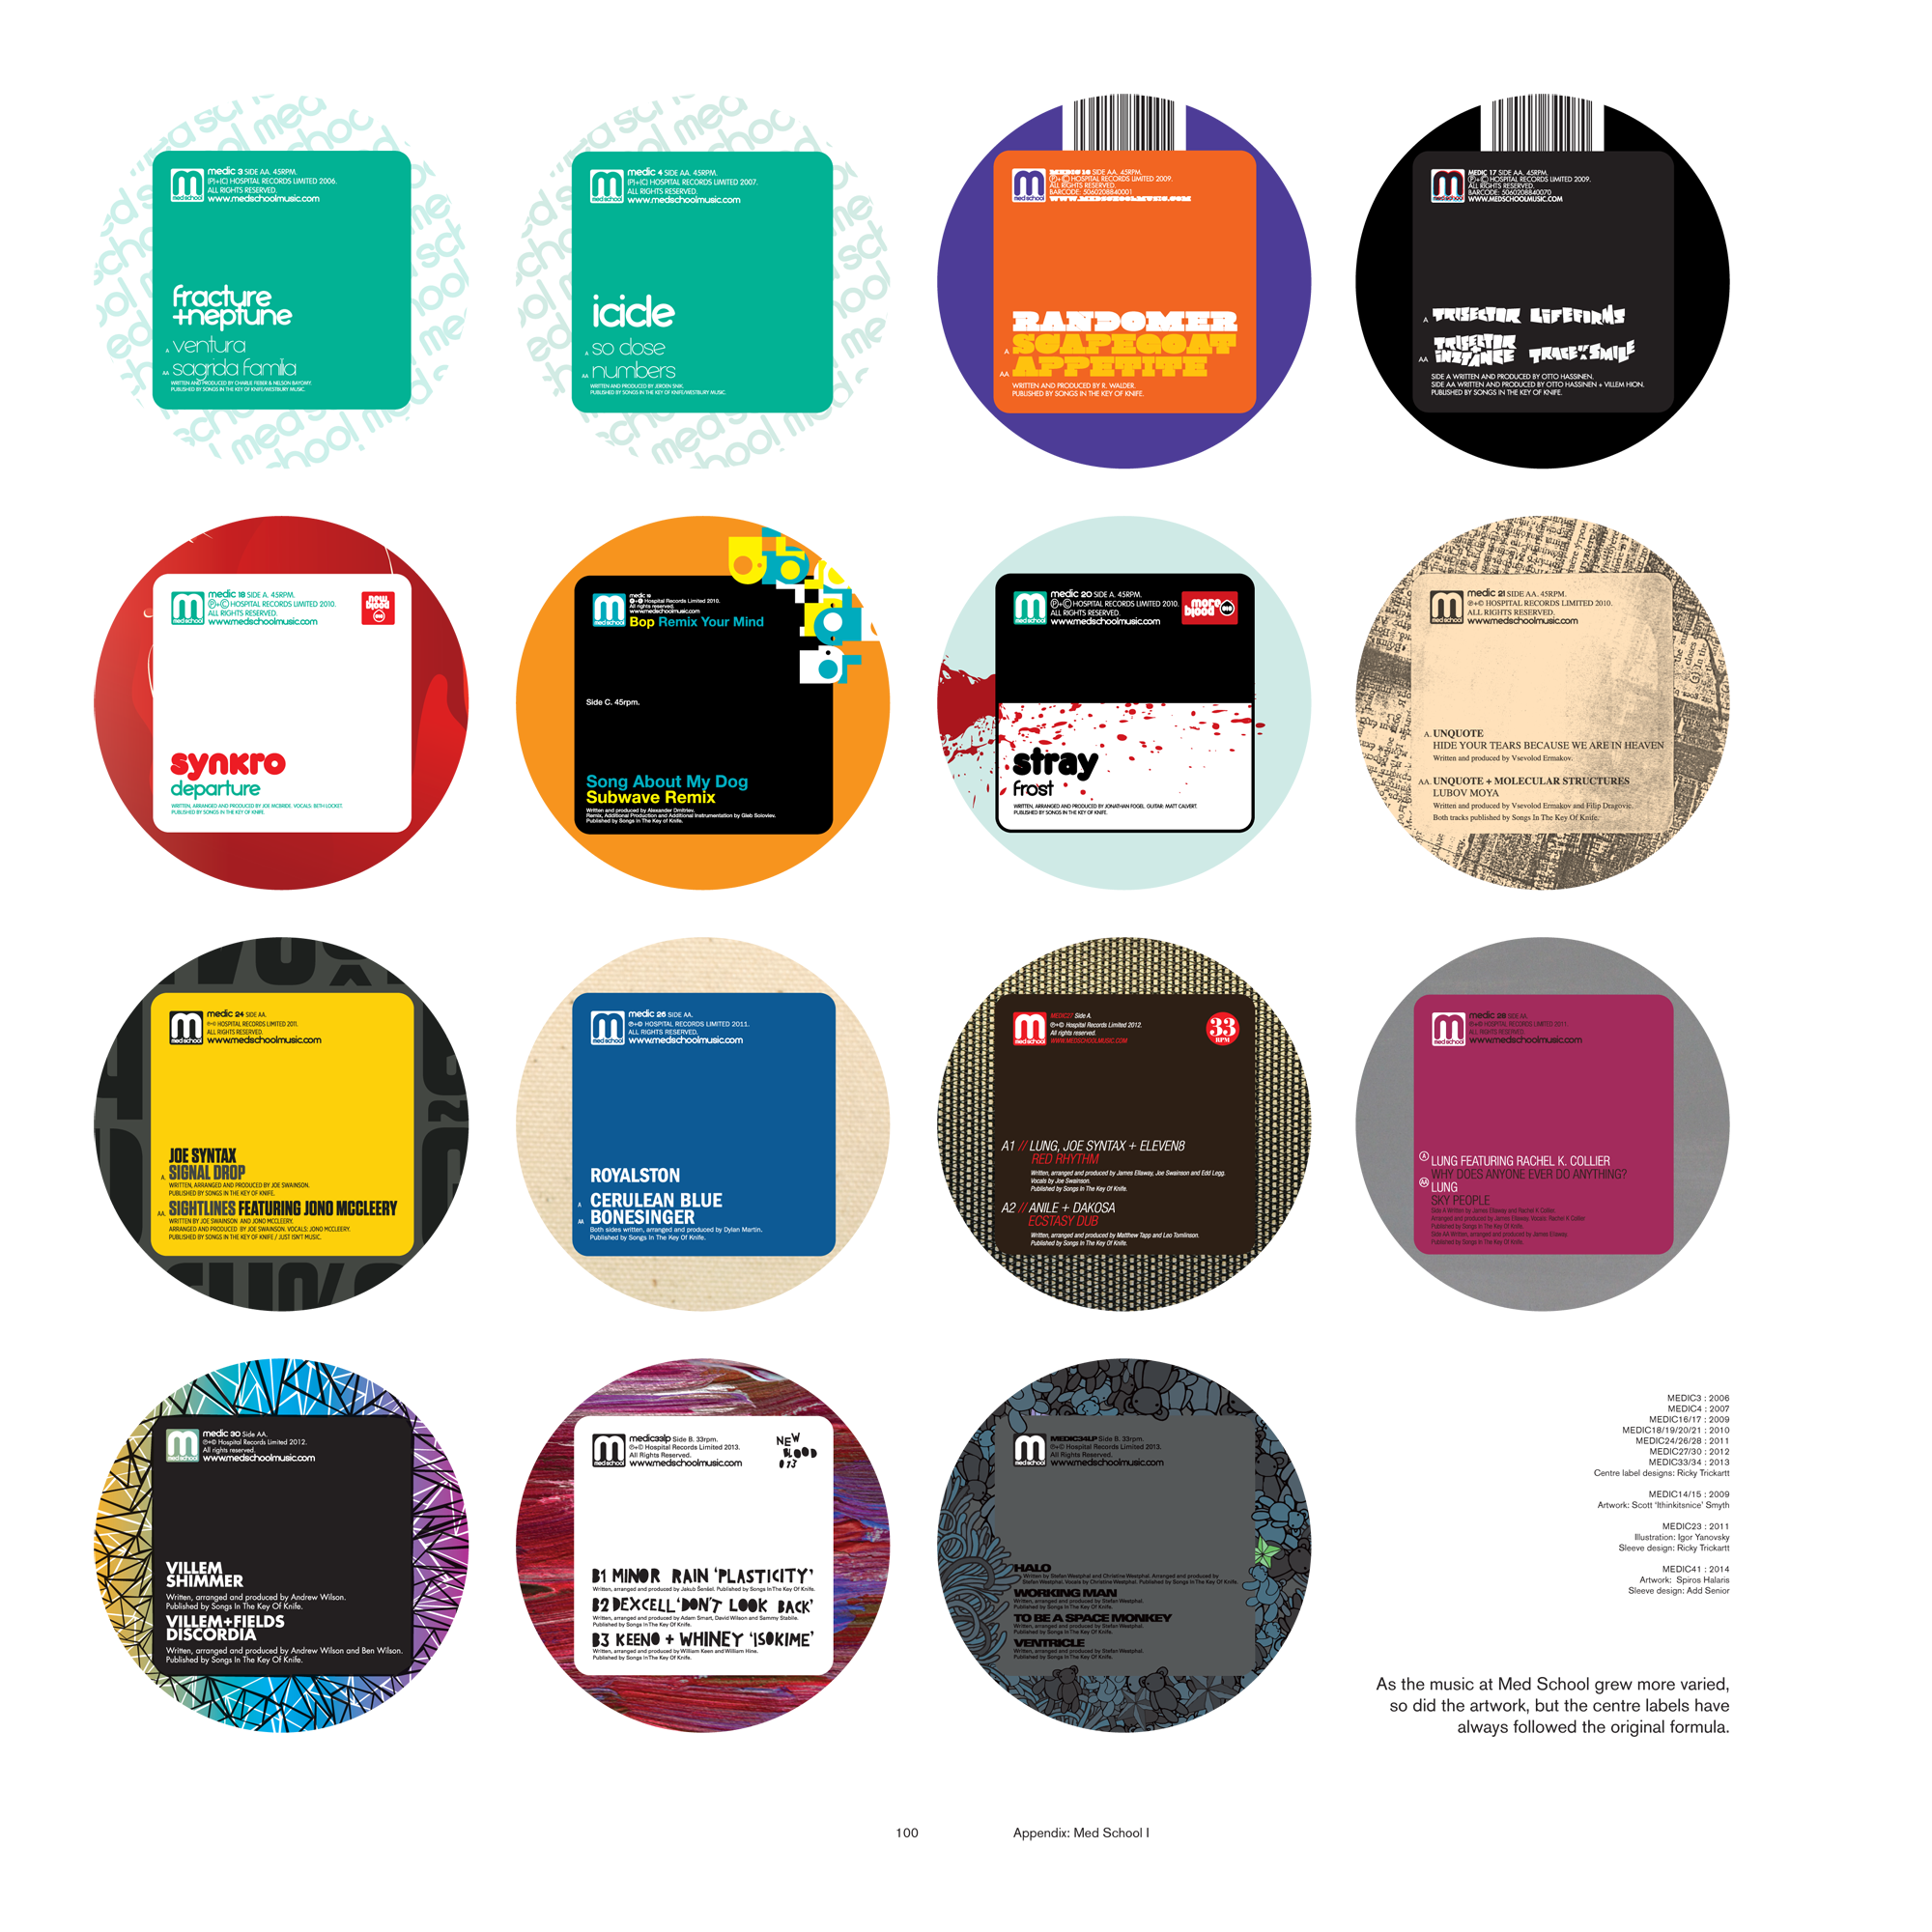 Almost every Med School Music centre label followed the same rounded-rectangle design system. This is a page from Hospital's NHS300 compendium demonstrating it!